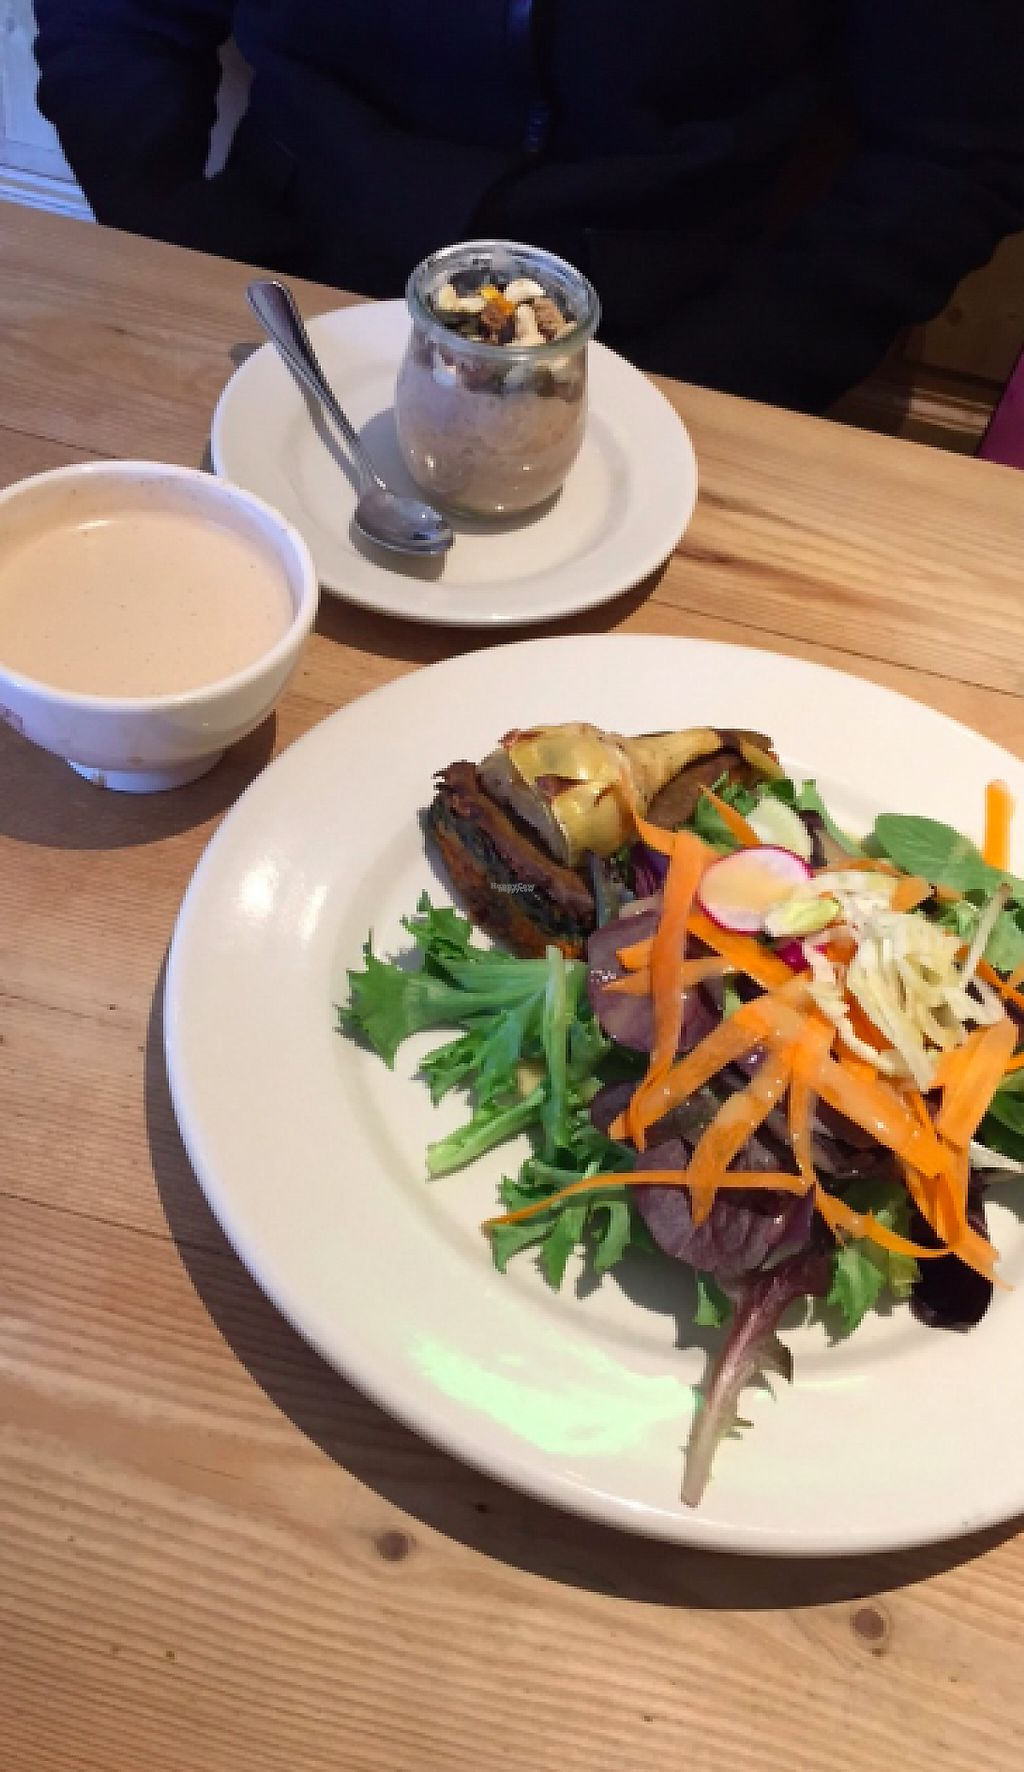 "Photo of Le Pain Quotidien  by <a href=""/members/profile/Hodahmad"">Hodahmad</a> <br/>Chai latte with almond milk, chia coconut pudding, and 6-vegetable tarte (all vegan!) <br/> April 22, 2017  - <a href='/contact/abuse/image/86309/251217'>Report</a>"